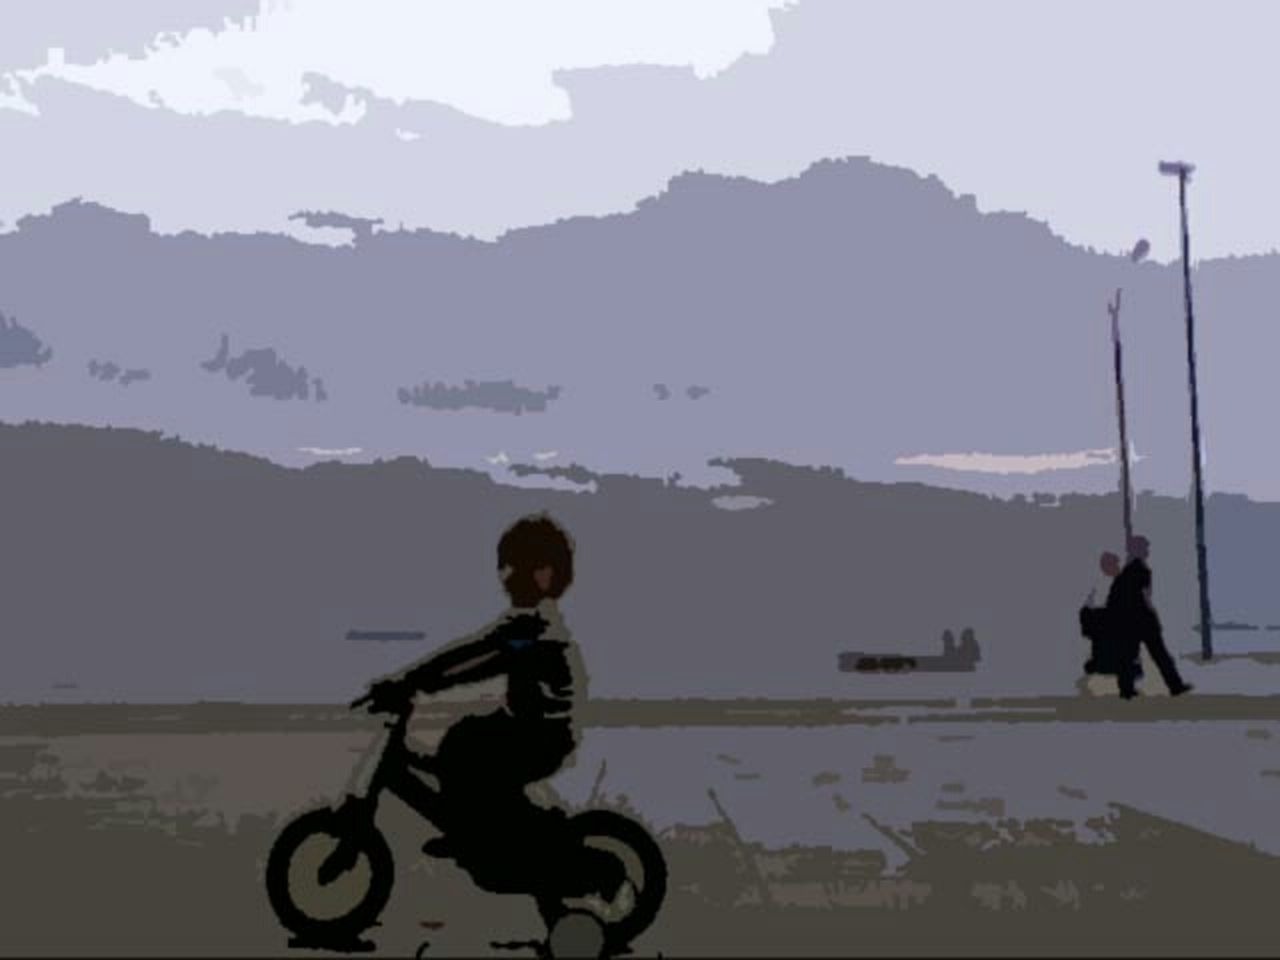 Careless Child Bicycling Painting Style Digital Art